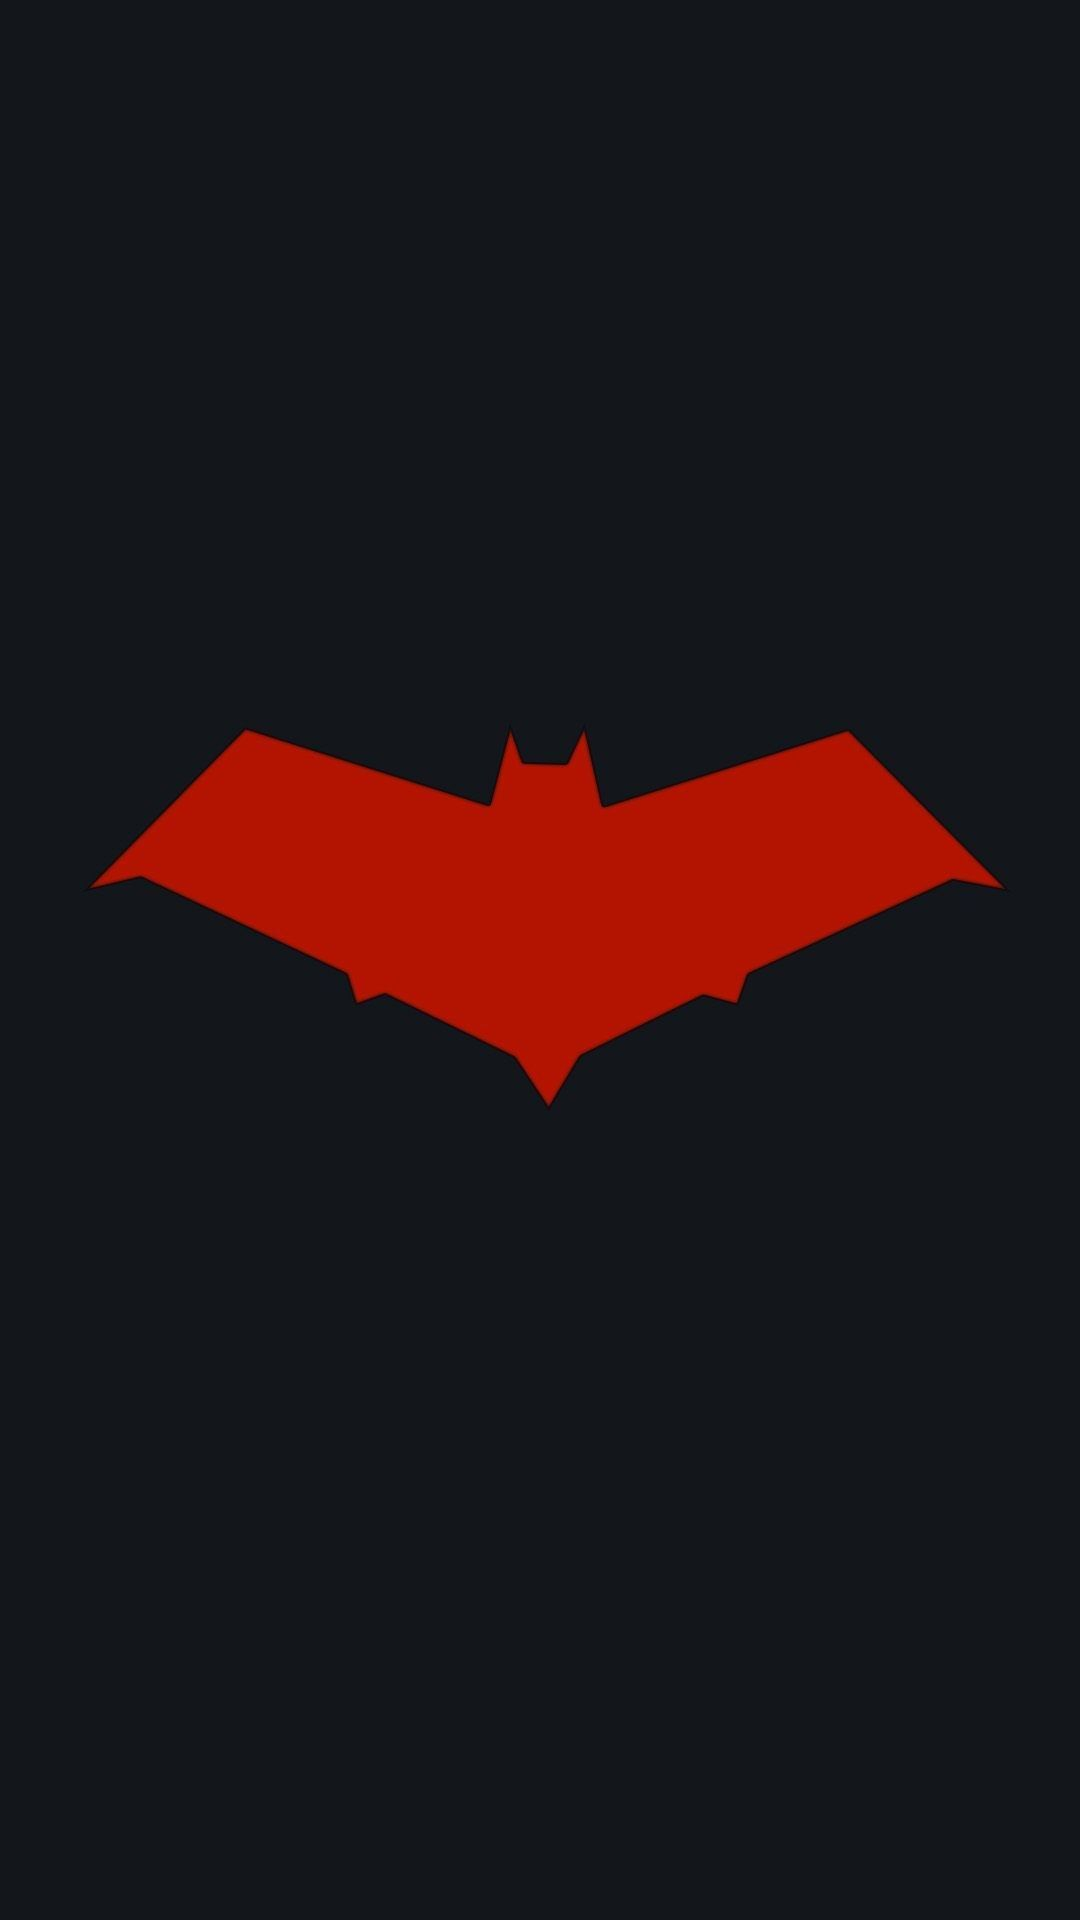 1080x1920 Photos Batman Logo iPhone Wallpapers. | iPhone Wallpapers ...